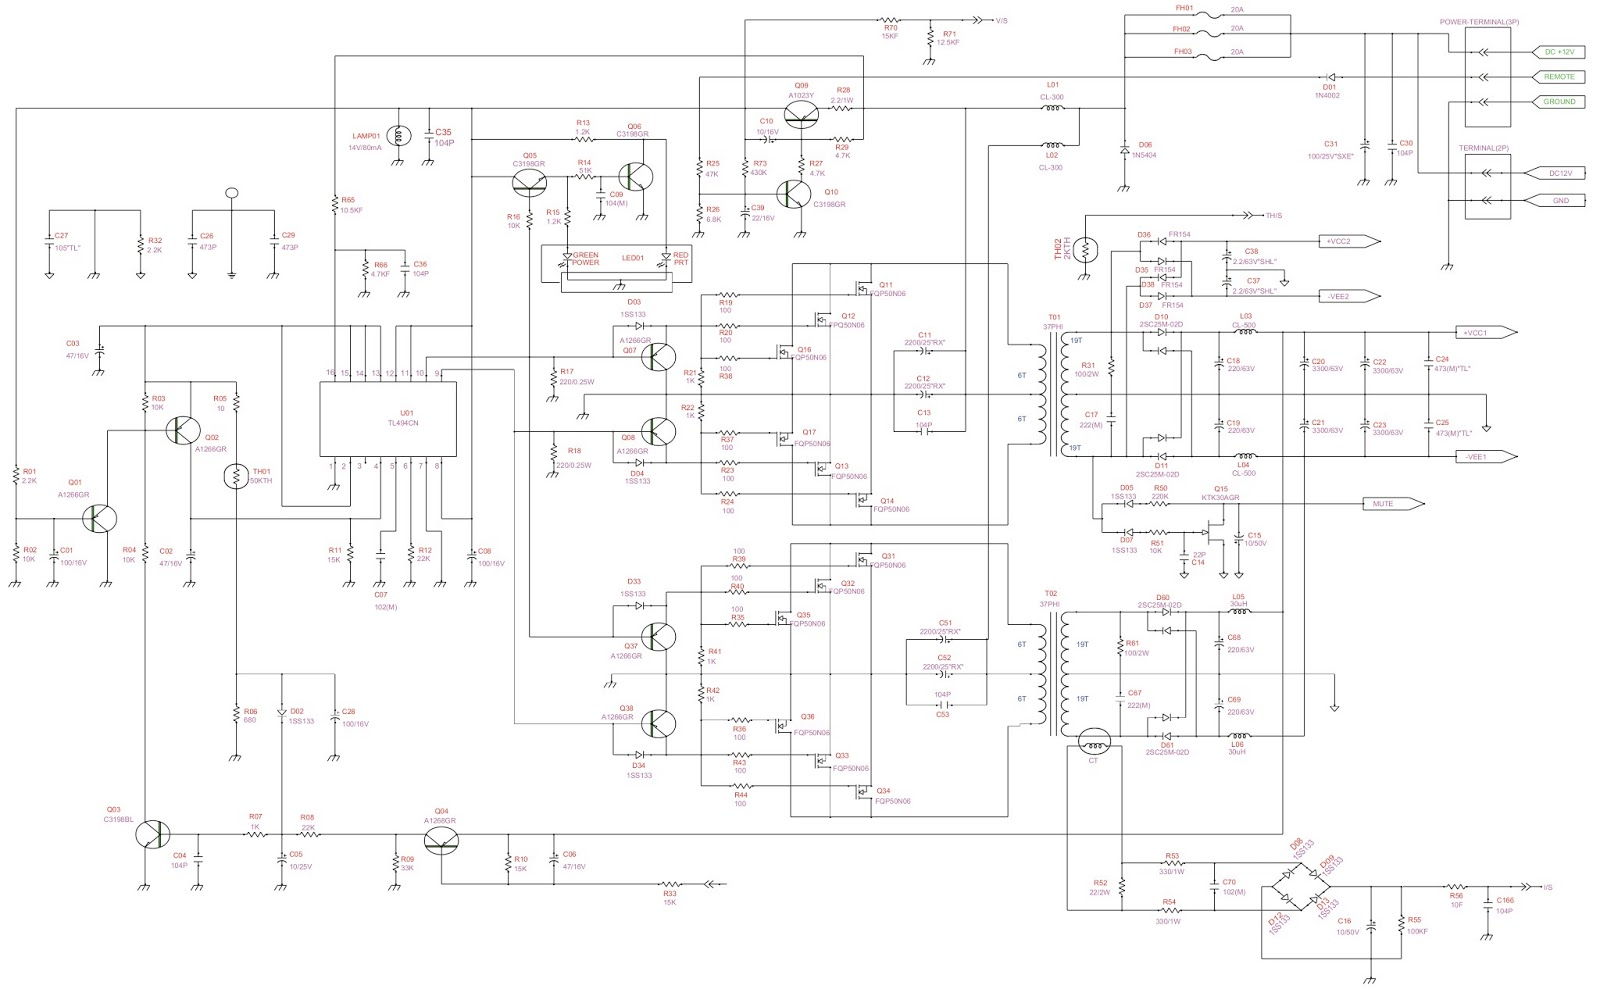 Speaker Wiring Diagram Ohms Gm 1 Wire Alternator 2 Bridged Free Engine Image For